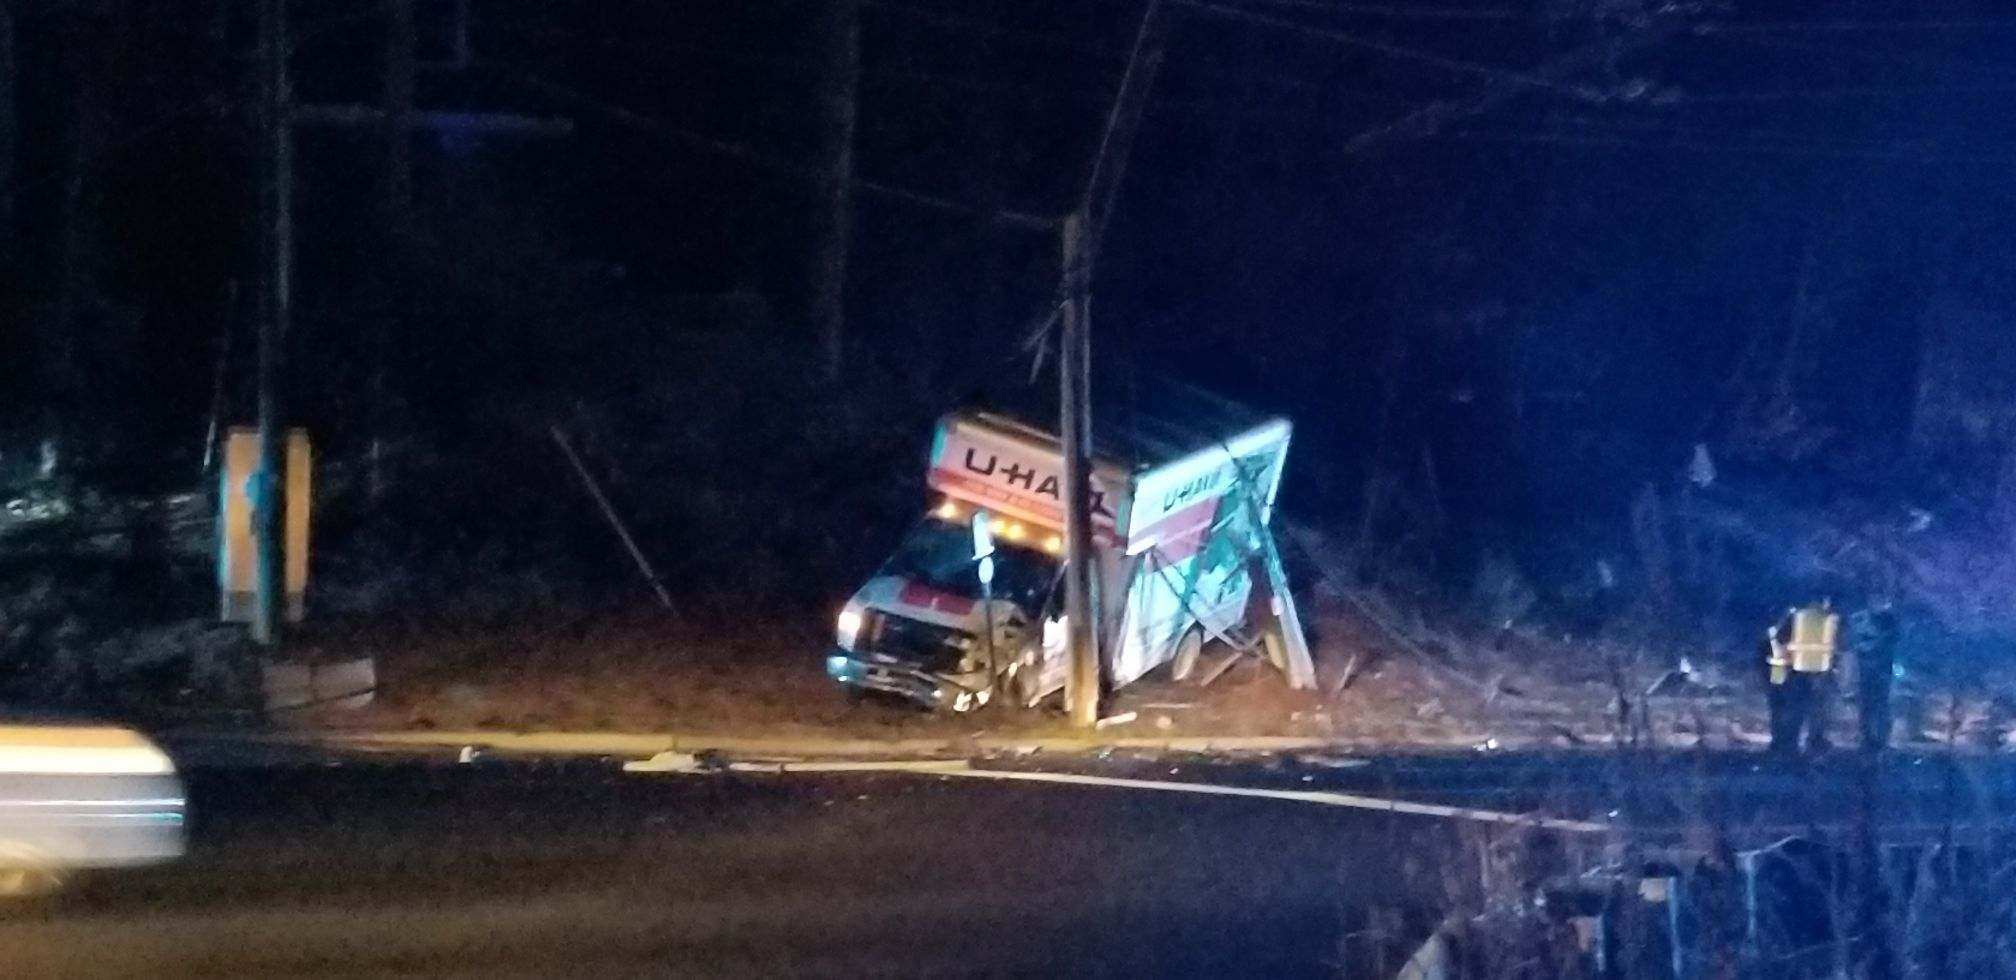 APD: U-Haul truck crashes into utility police. No injuries. (Photo credit: Thomas Cahill)